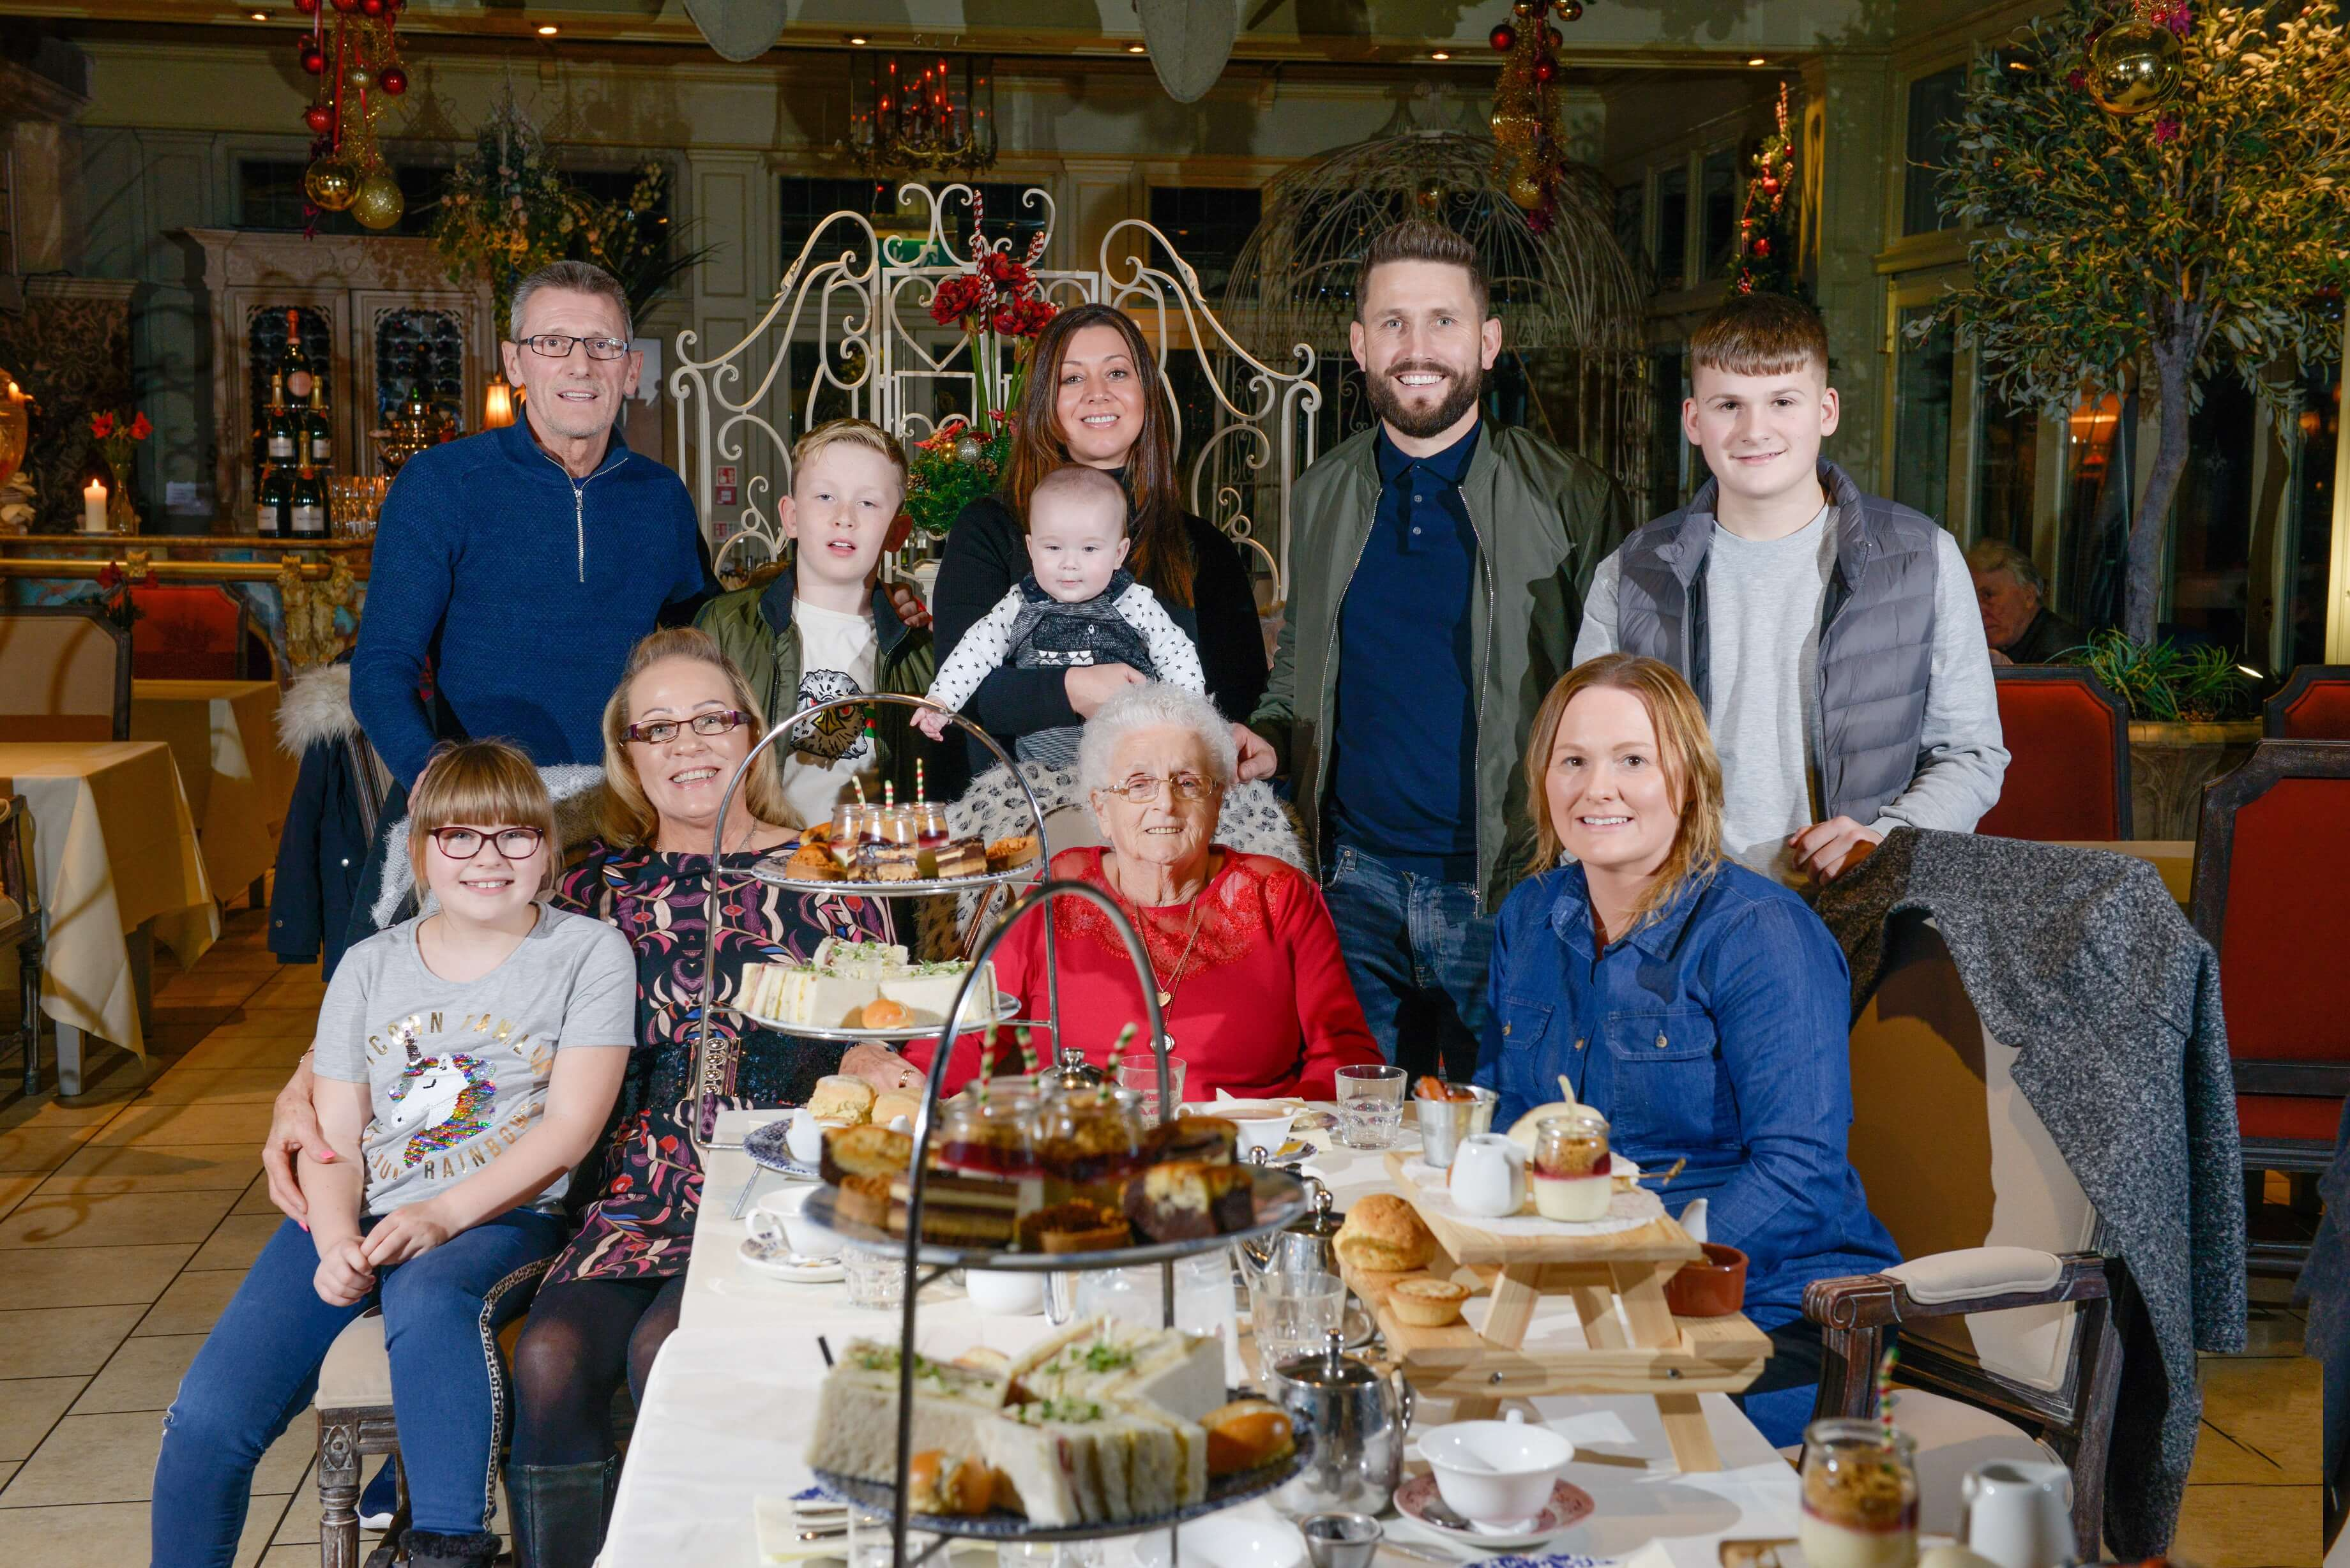 93-year-old Great-Grandma with 73 great grandkids treated to afternoon tea at Coombe Abbey with four generations